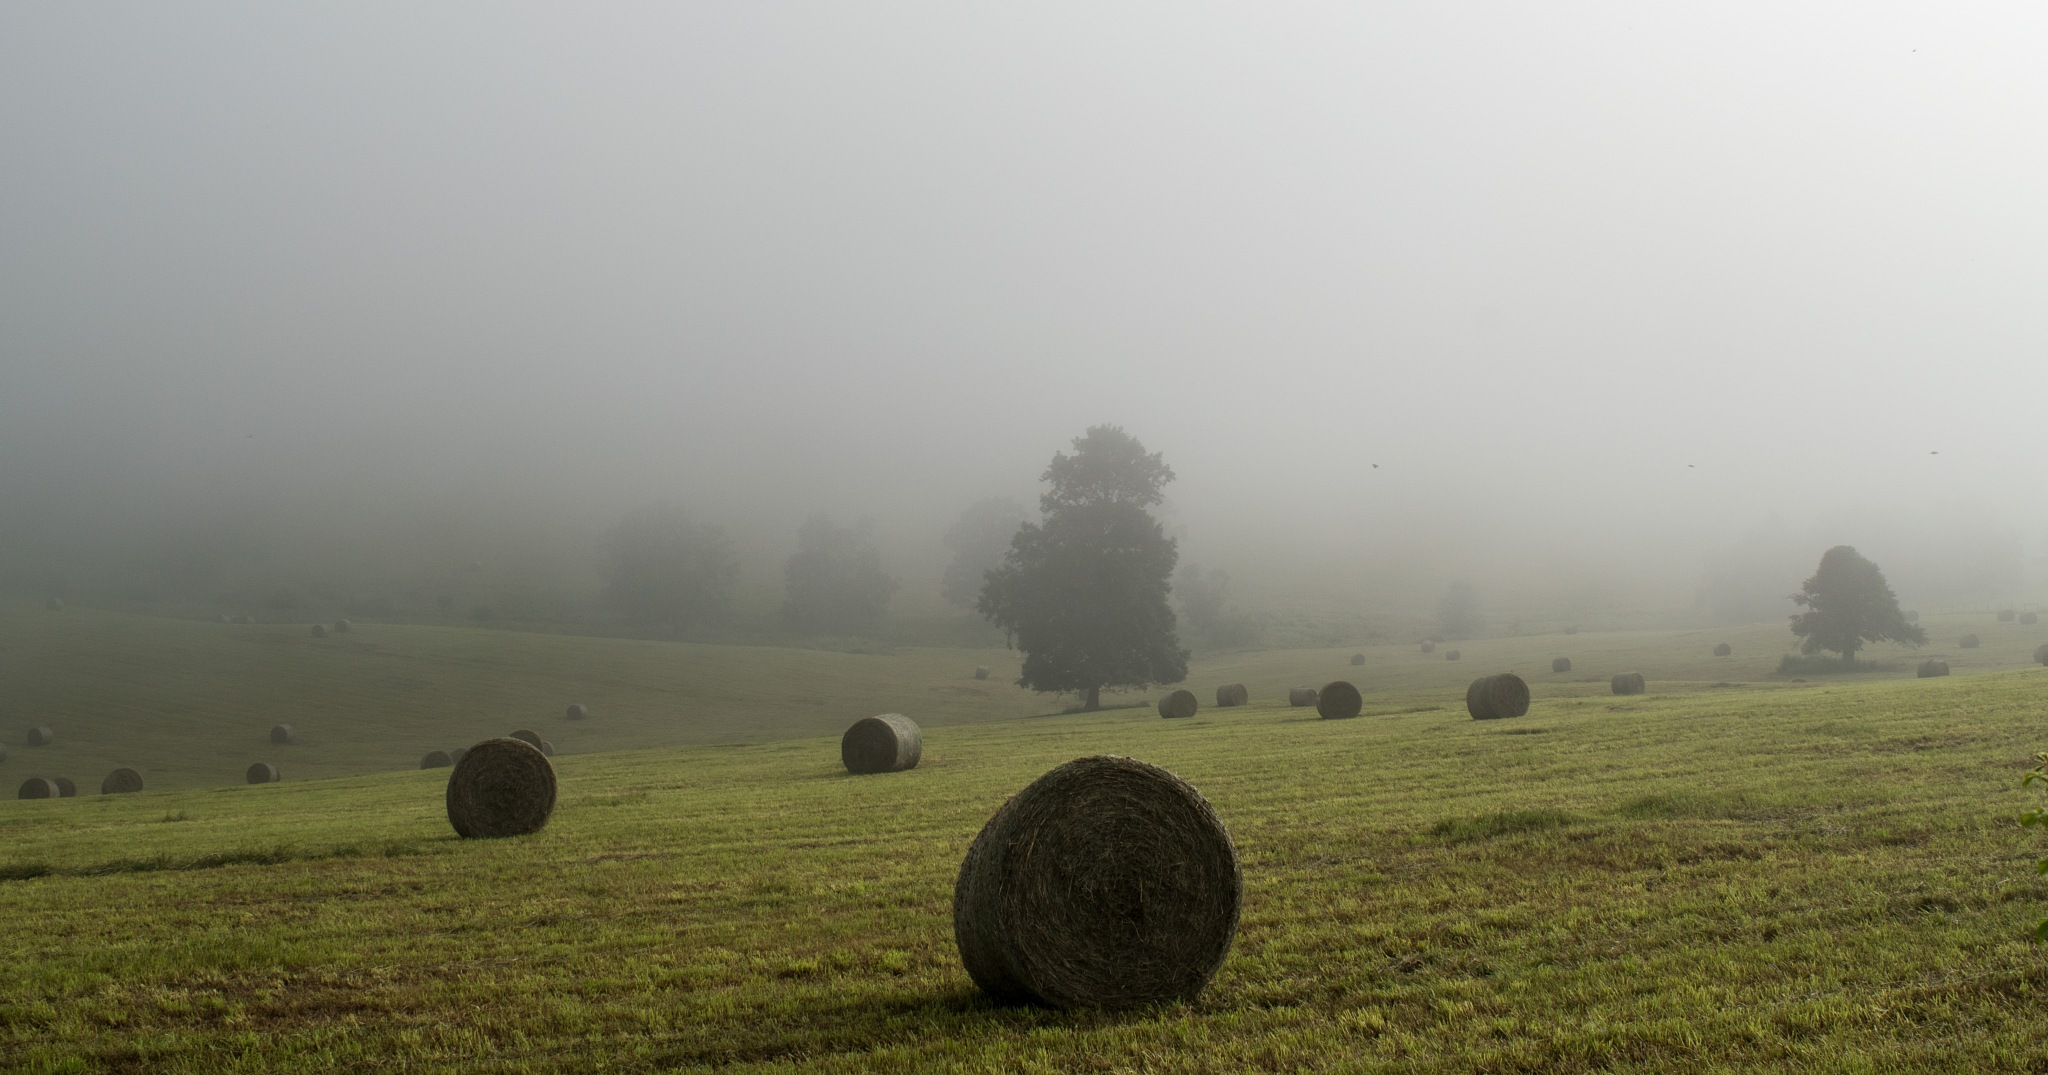 The Fog and the Haybales by Bonita Loggins